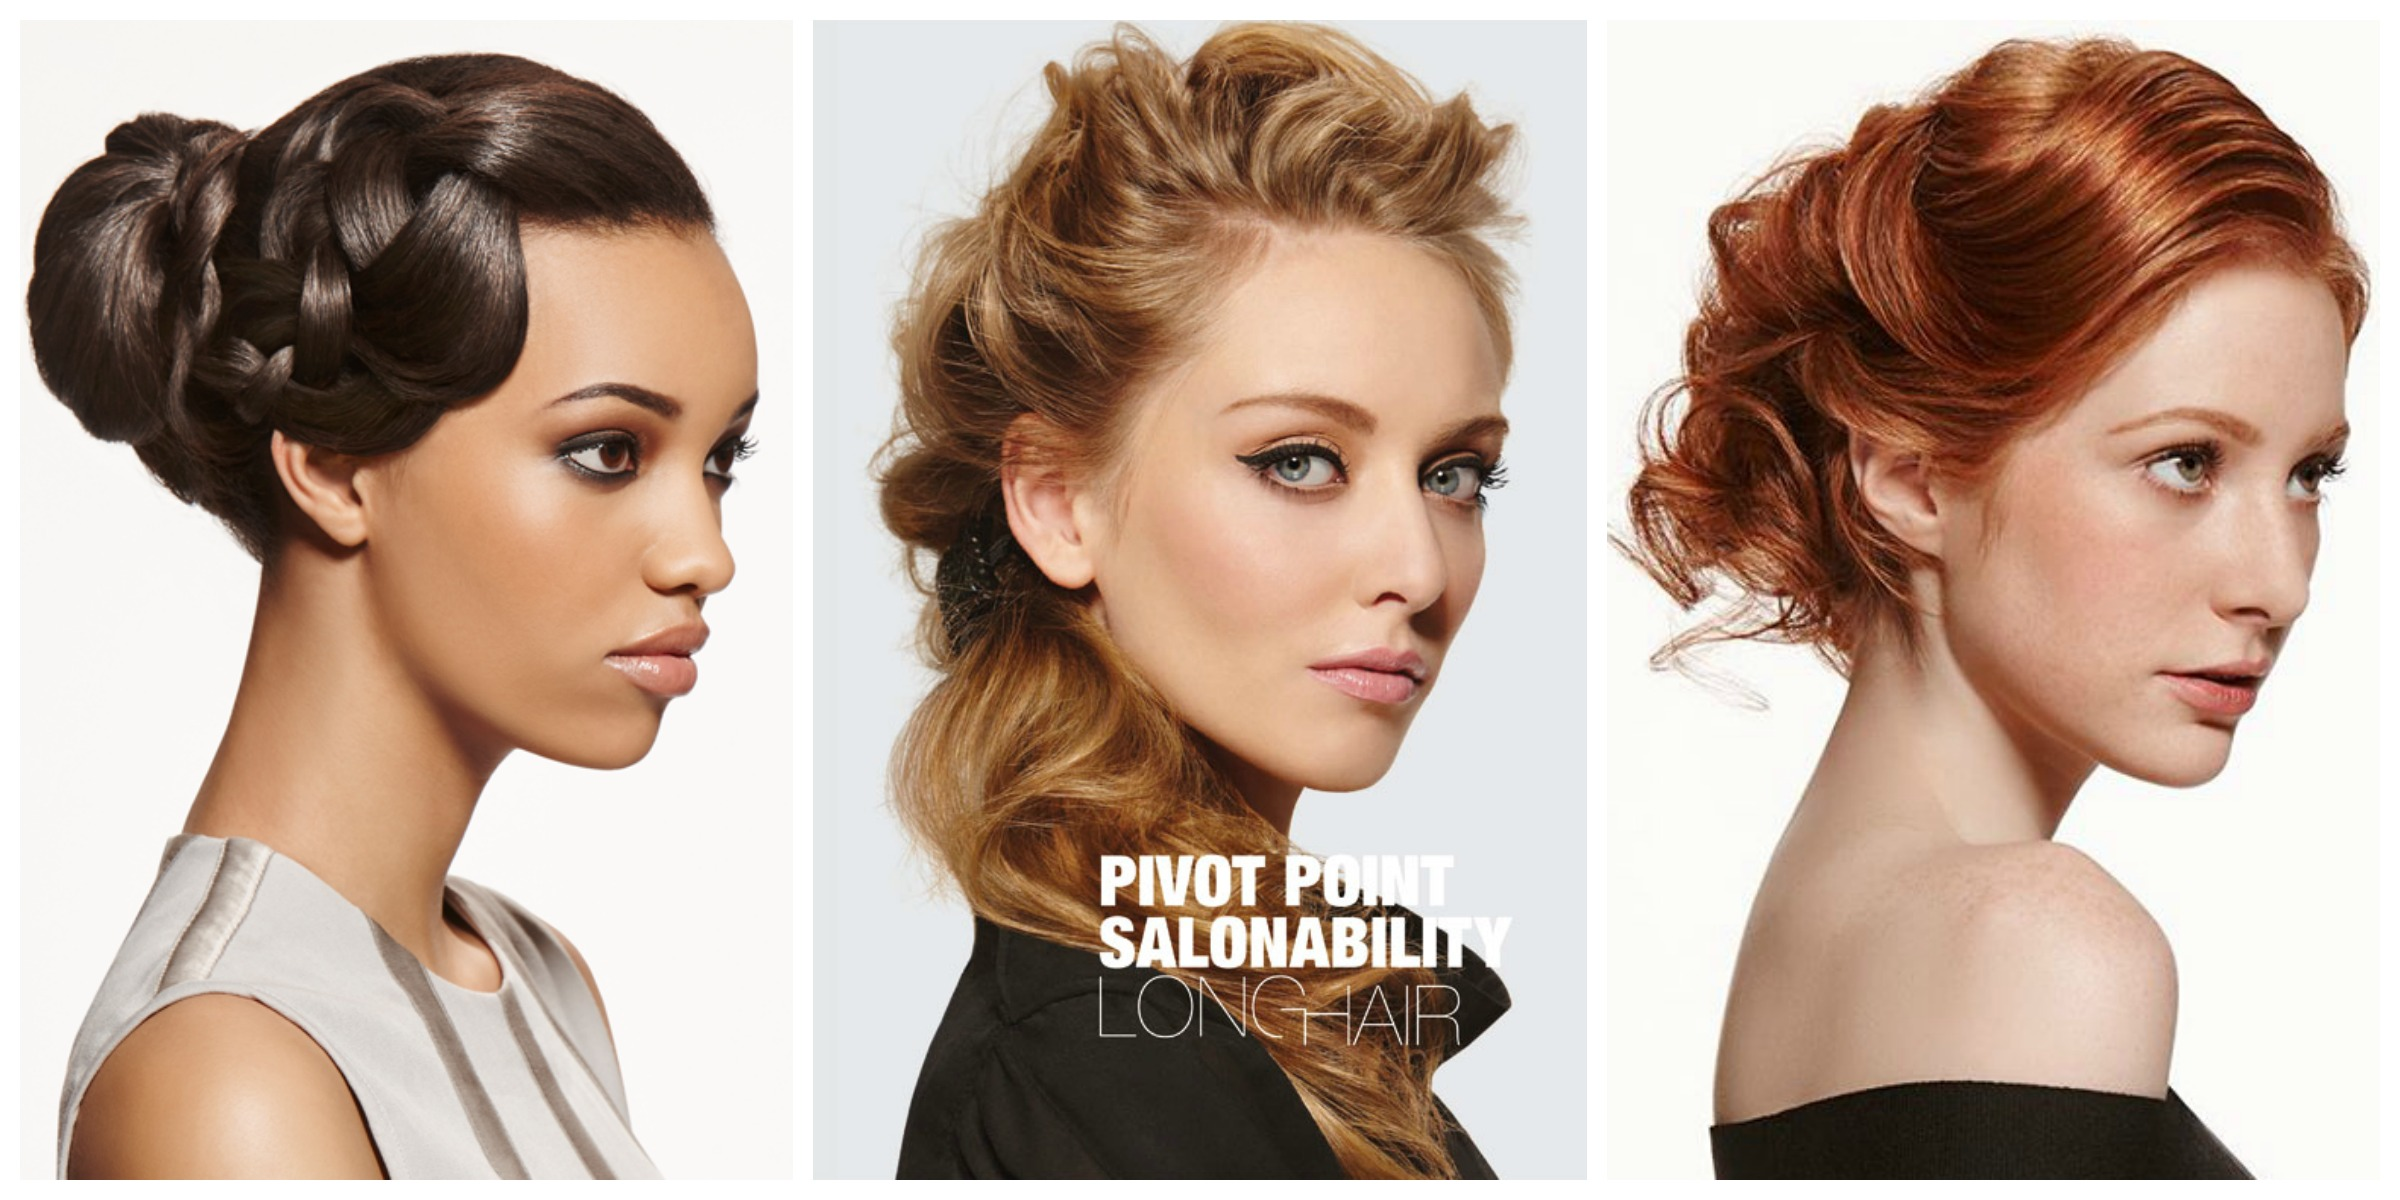 Salonability Long Hair